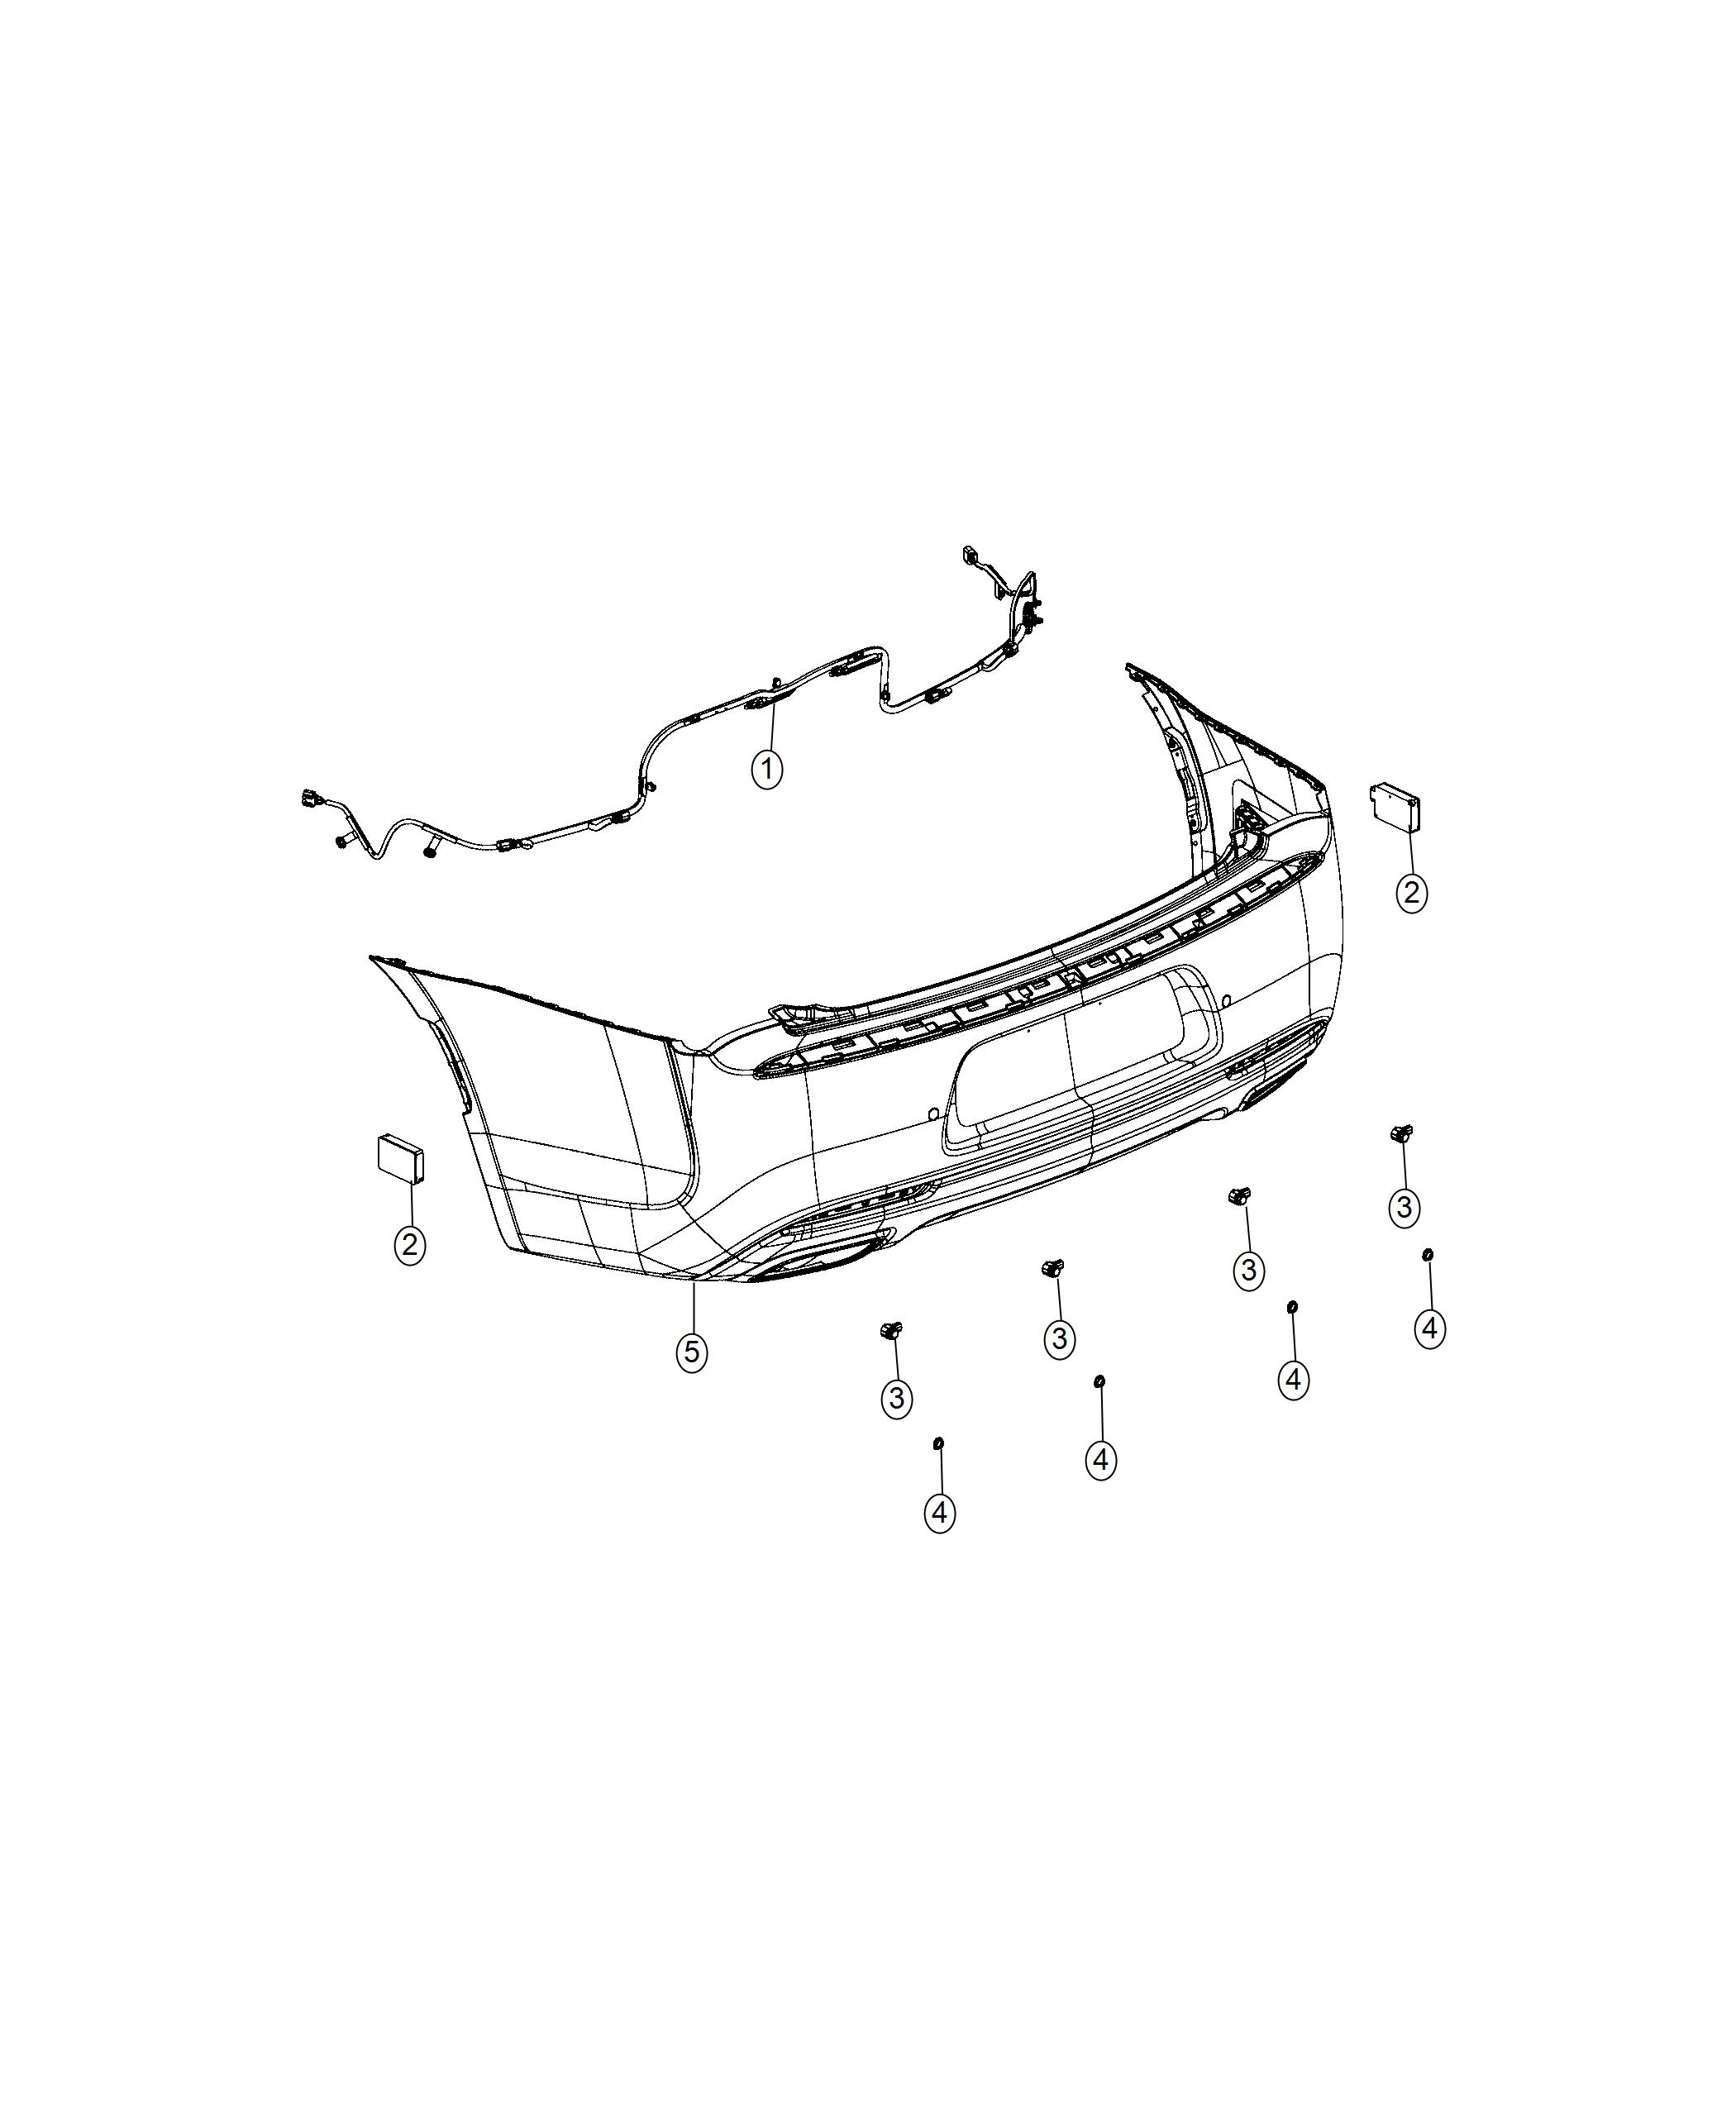 1994 Ford Mustang Vacuum Line Diagram Furthermore 2016 Nissan Altima